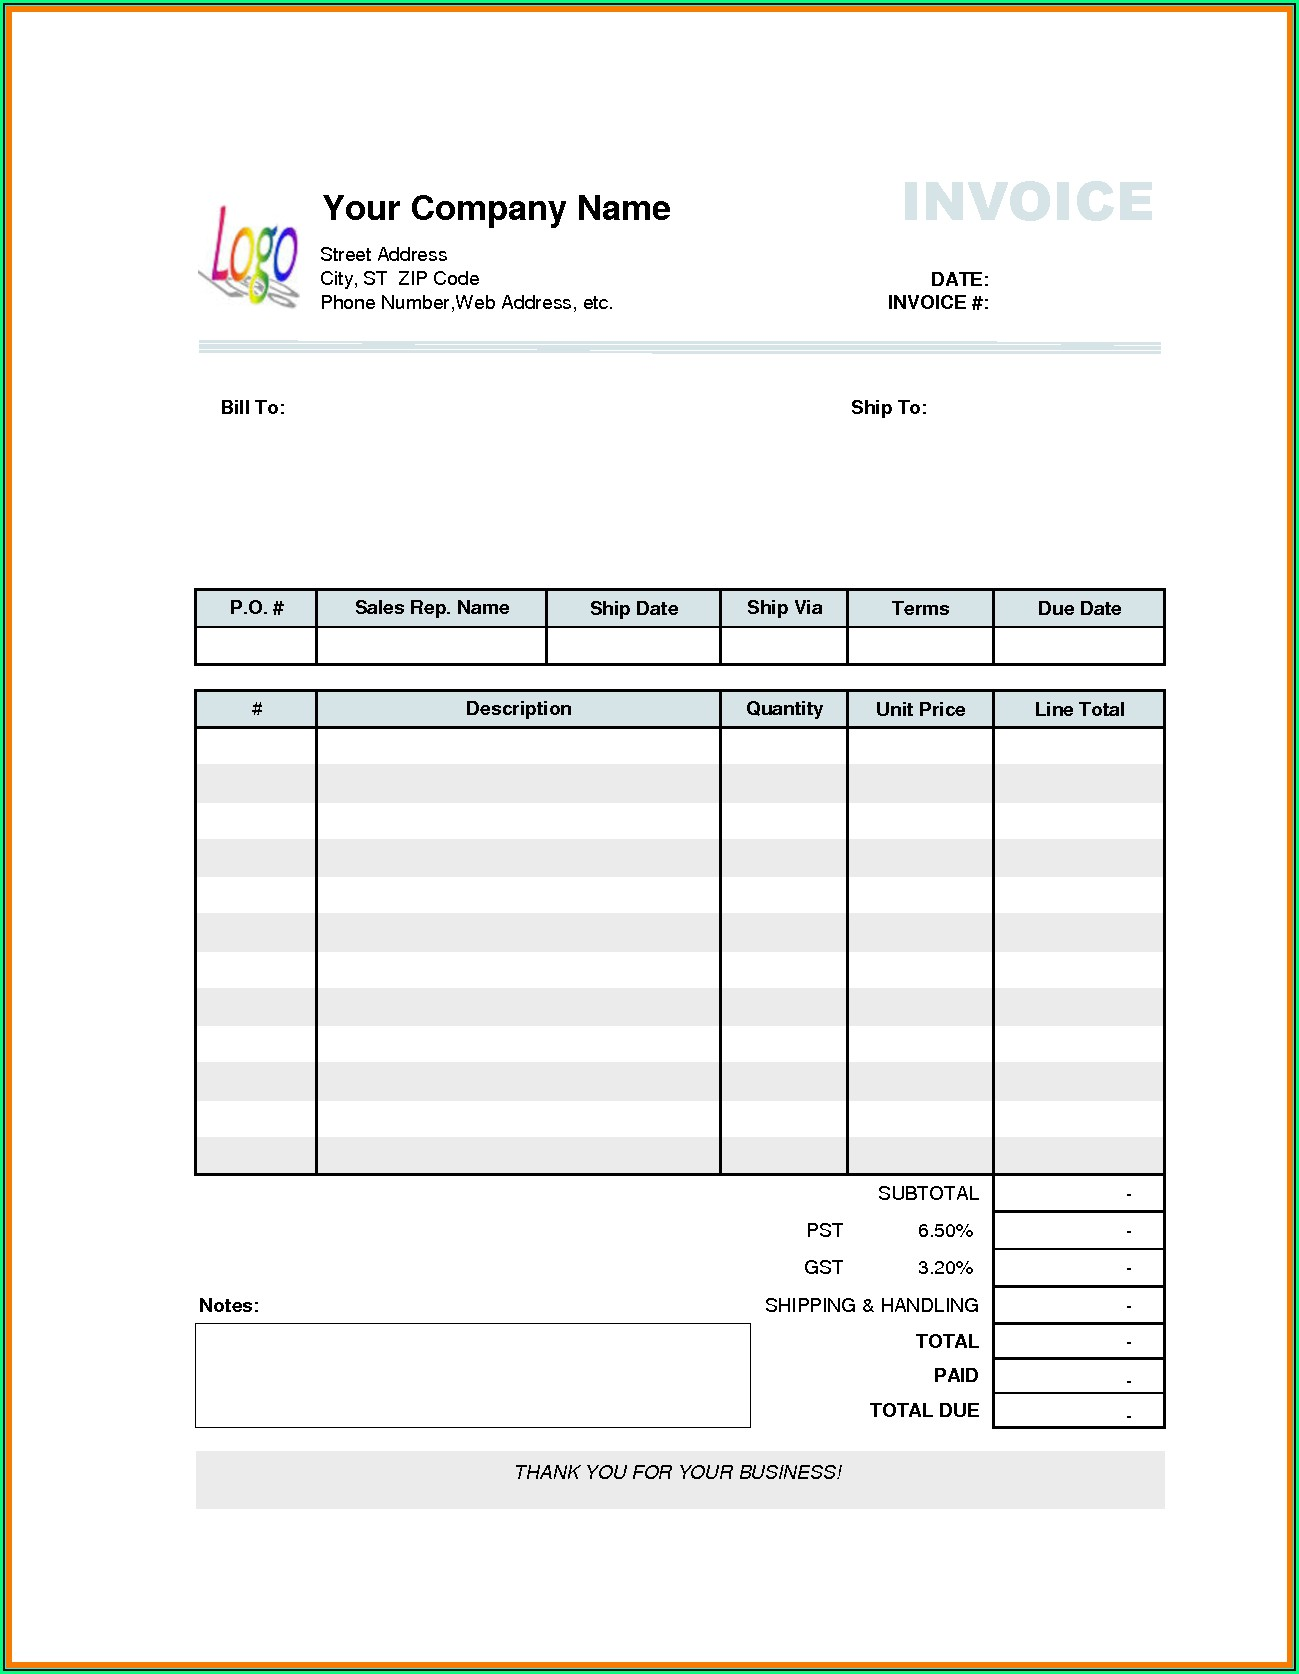 Paid In Full Invoice Template